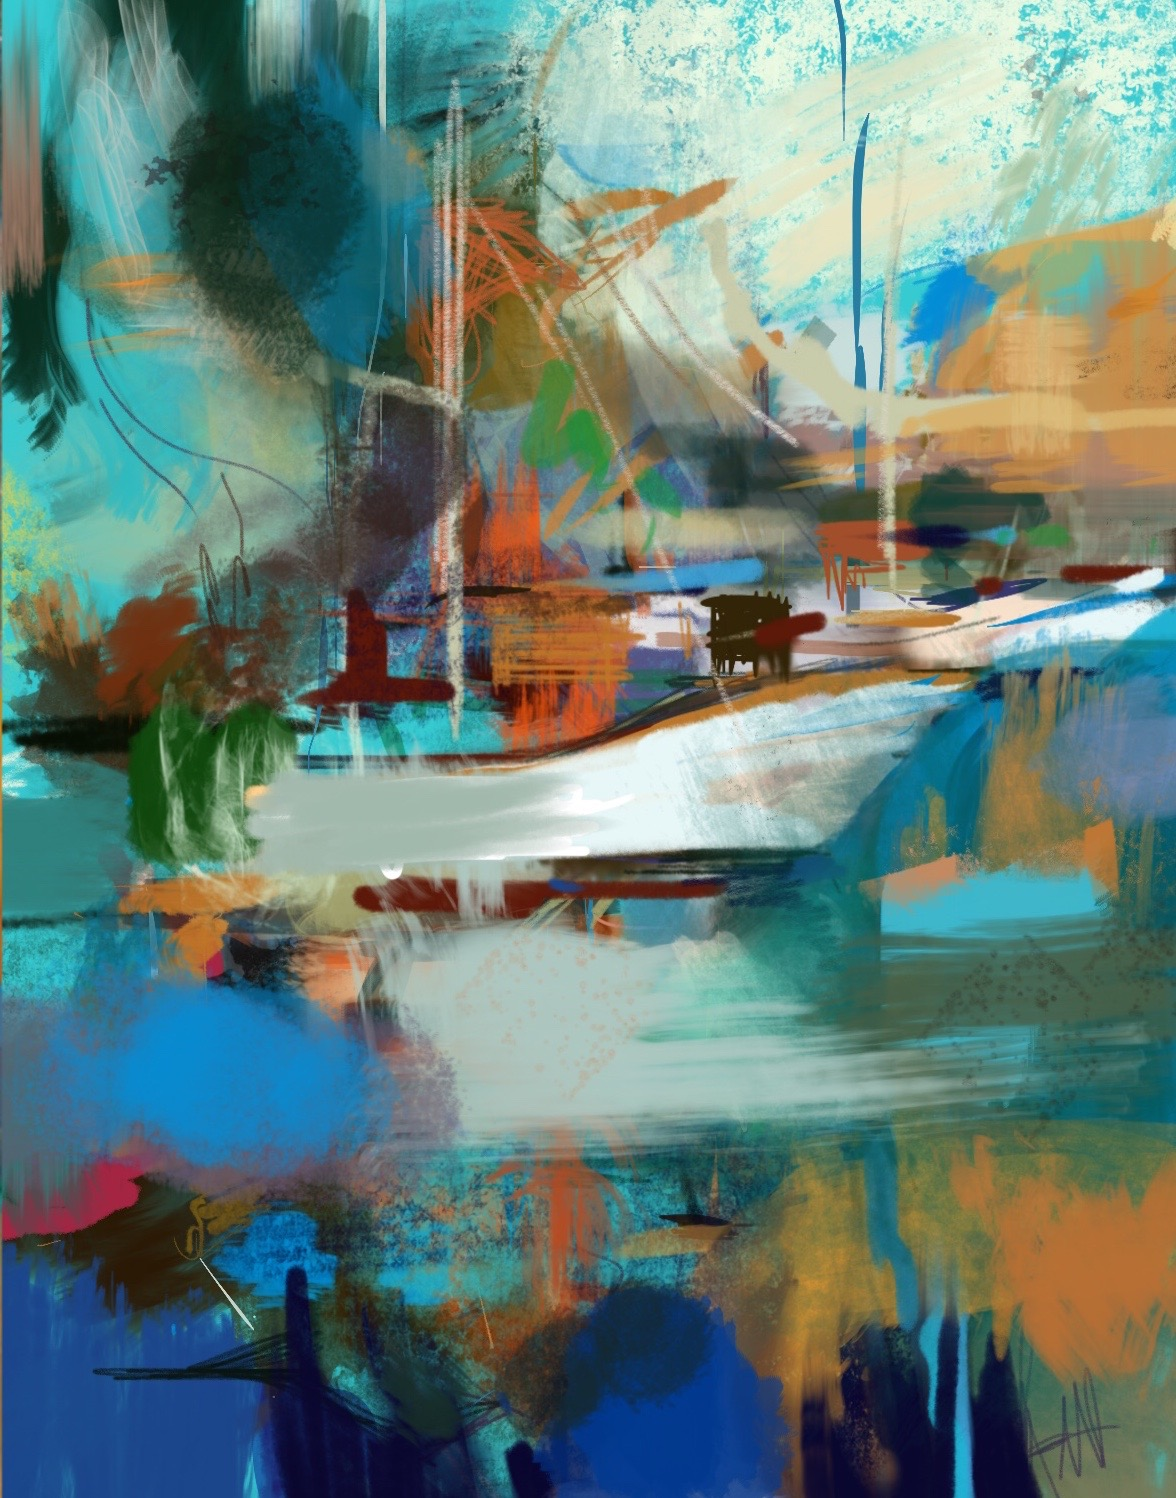 Abstract Boats, iPad composition